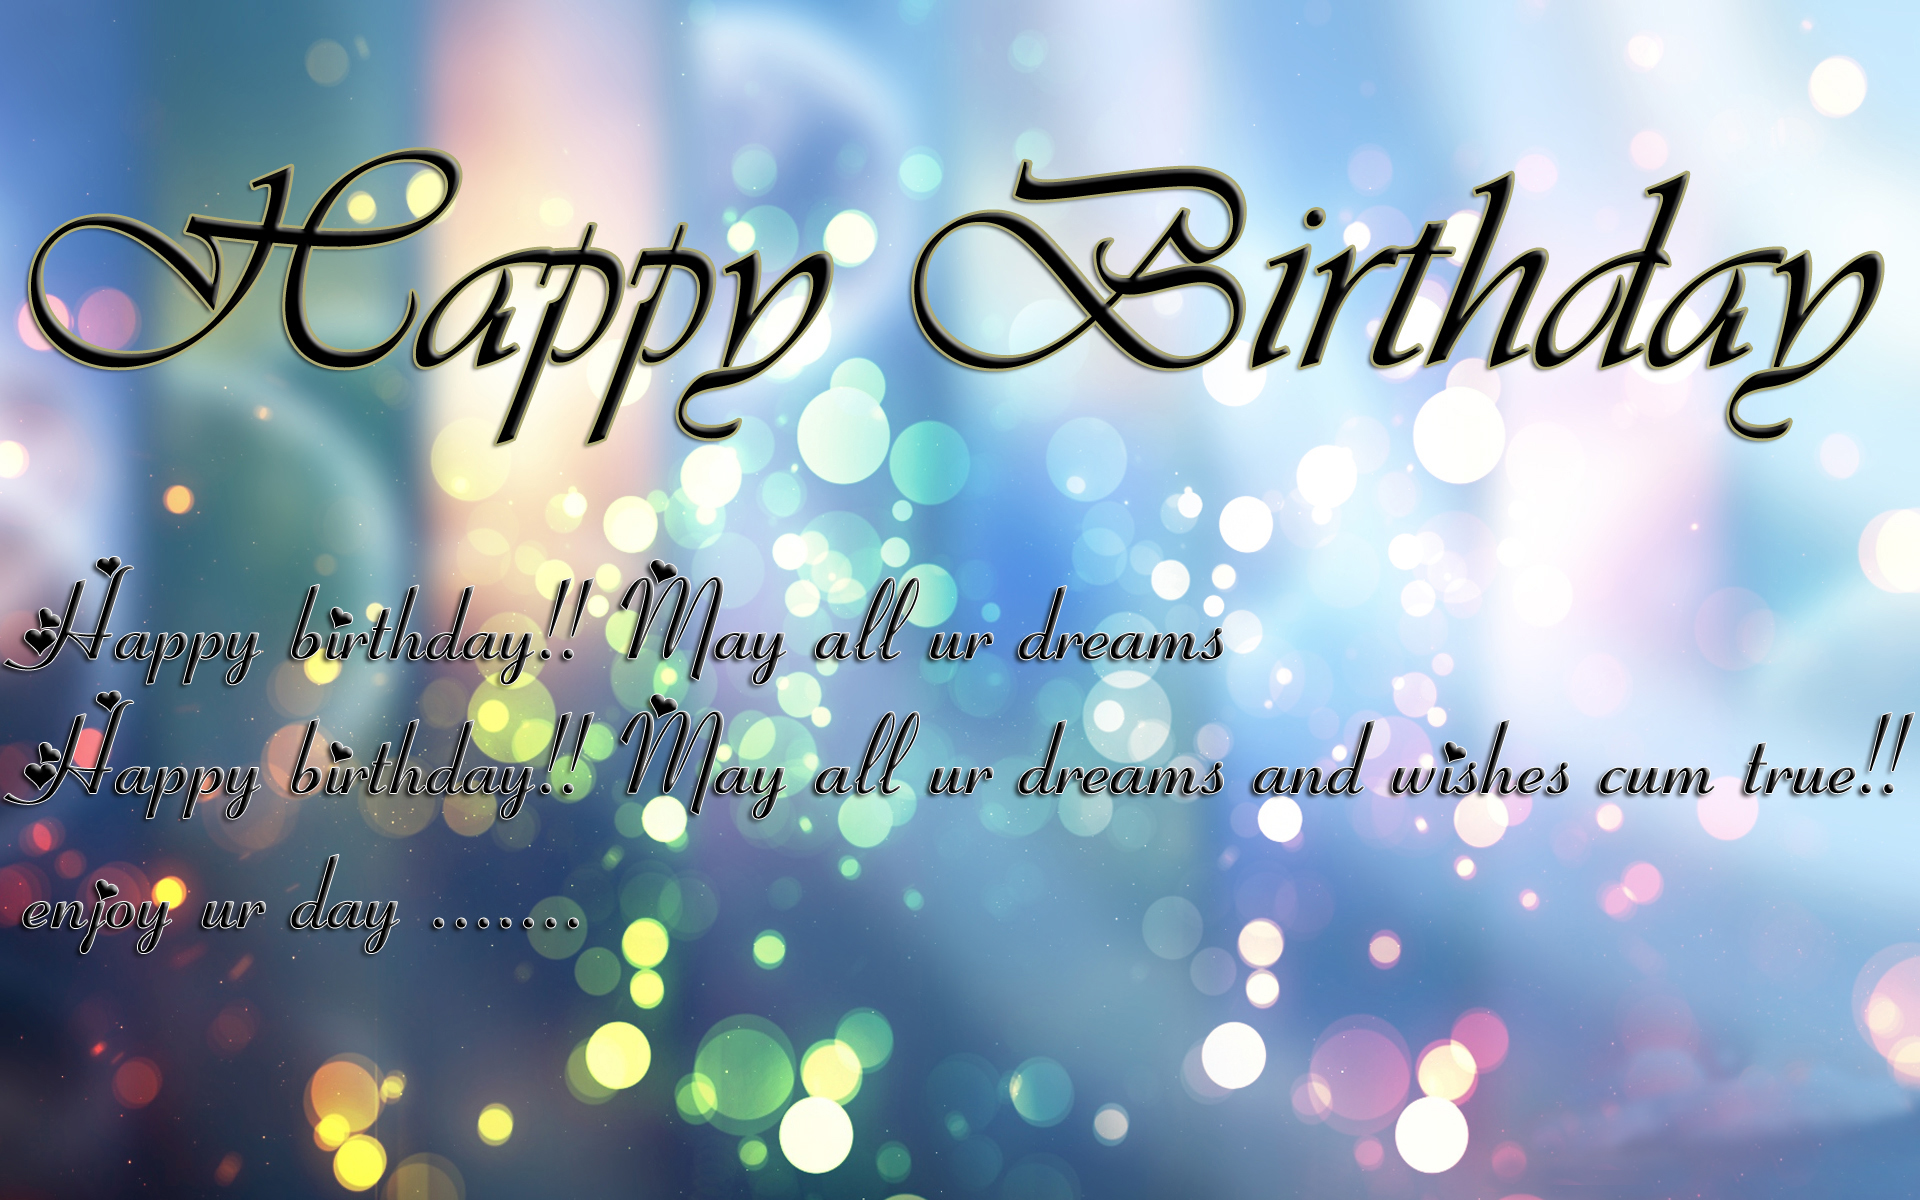 Top 100 happy birthday sms wishes quotes text messages happy birthday wishes m4hsunfo